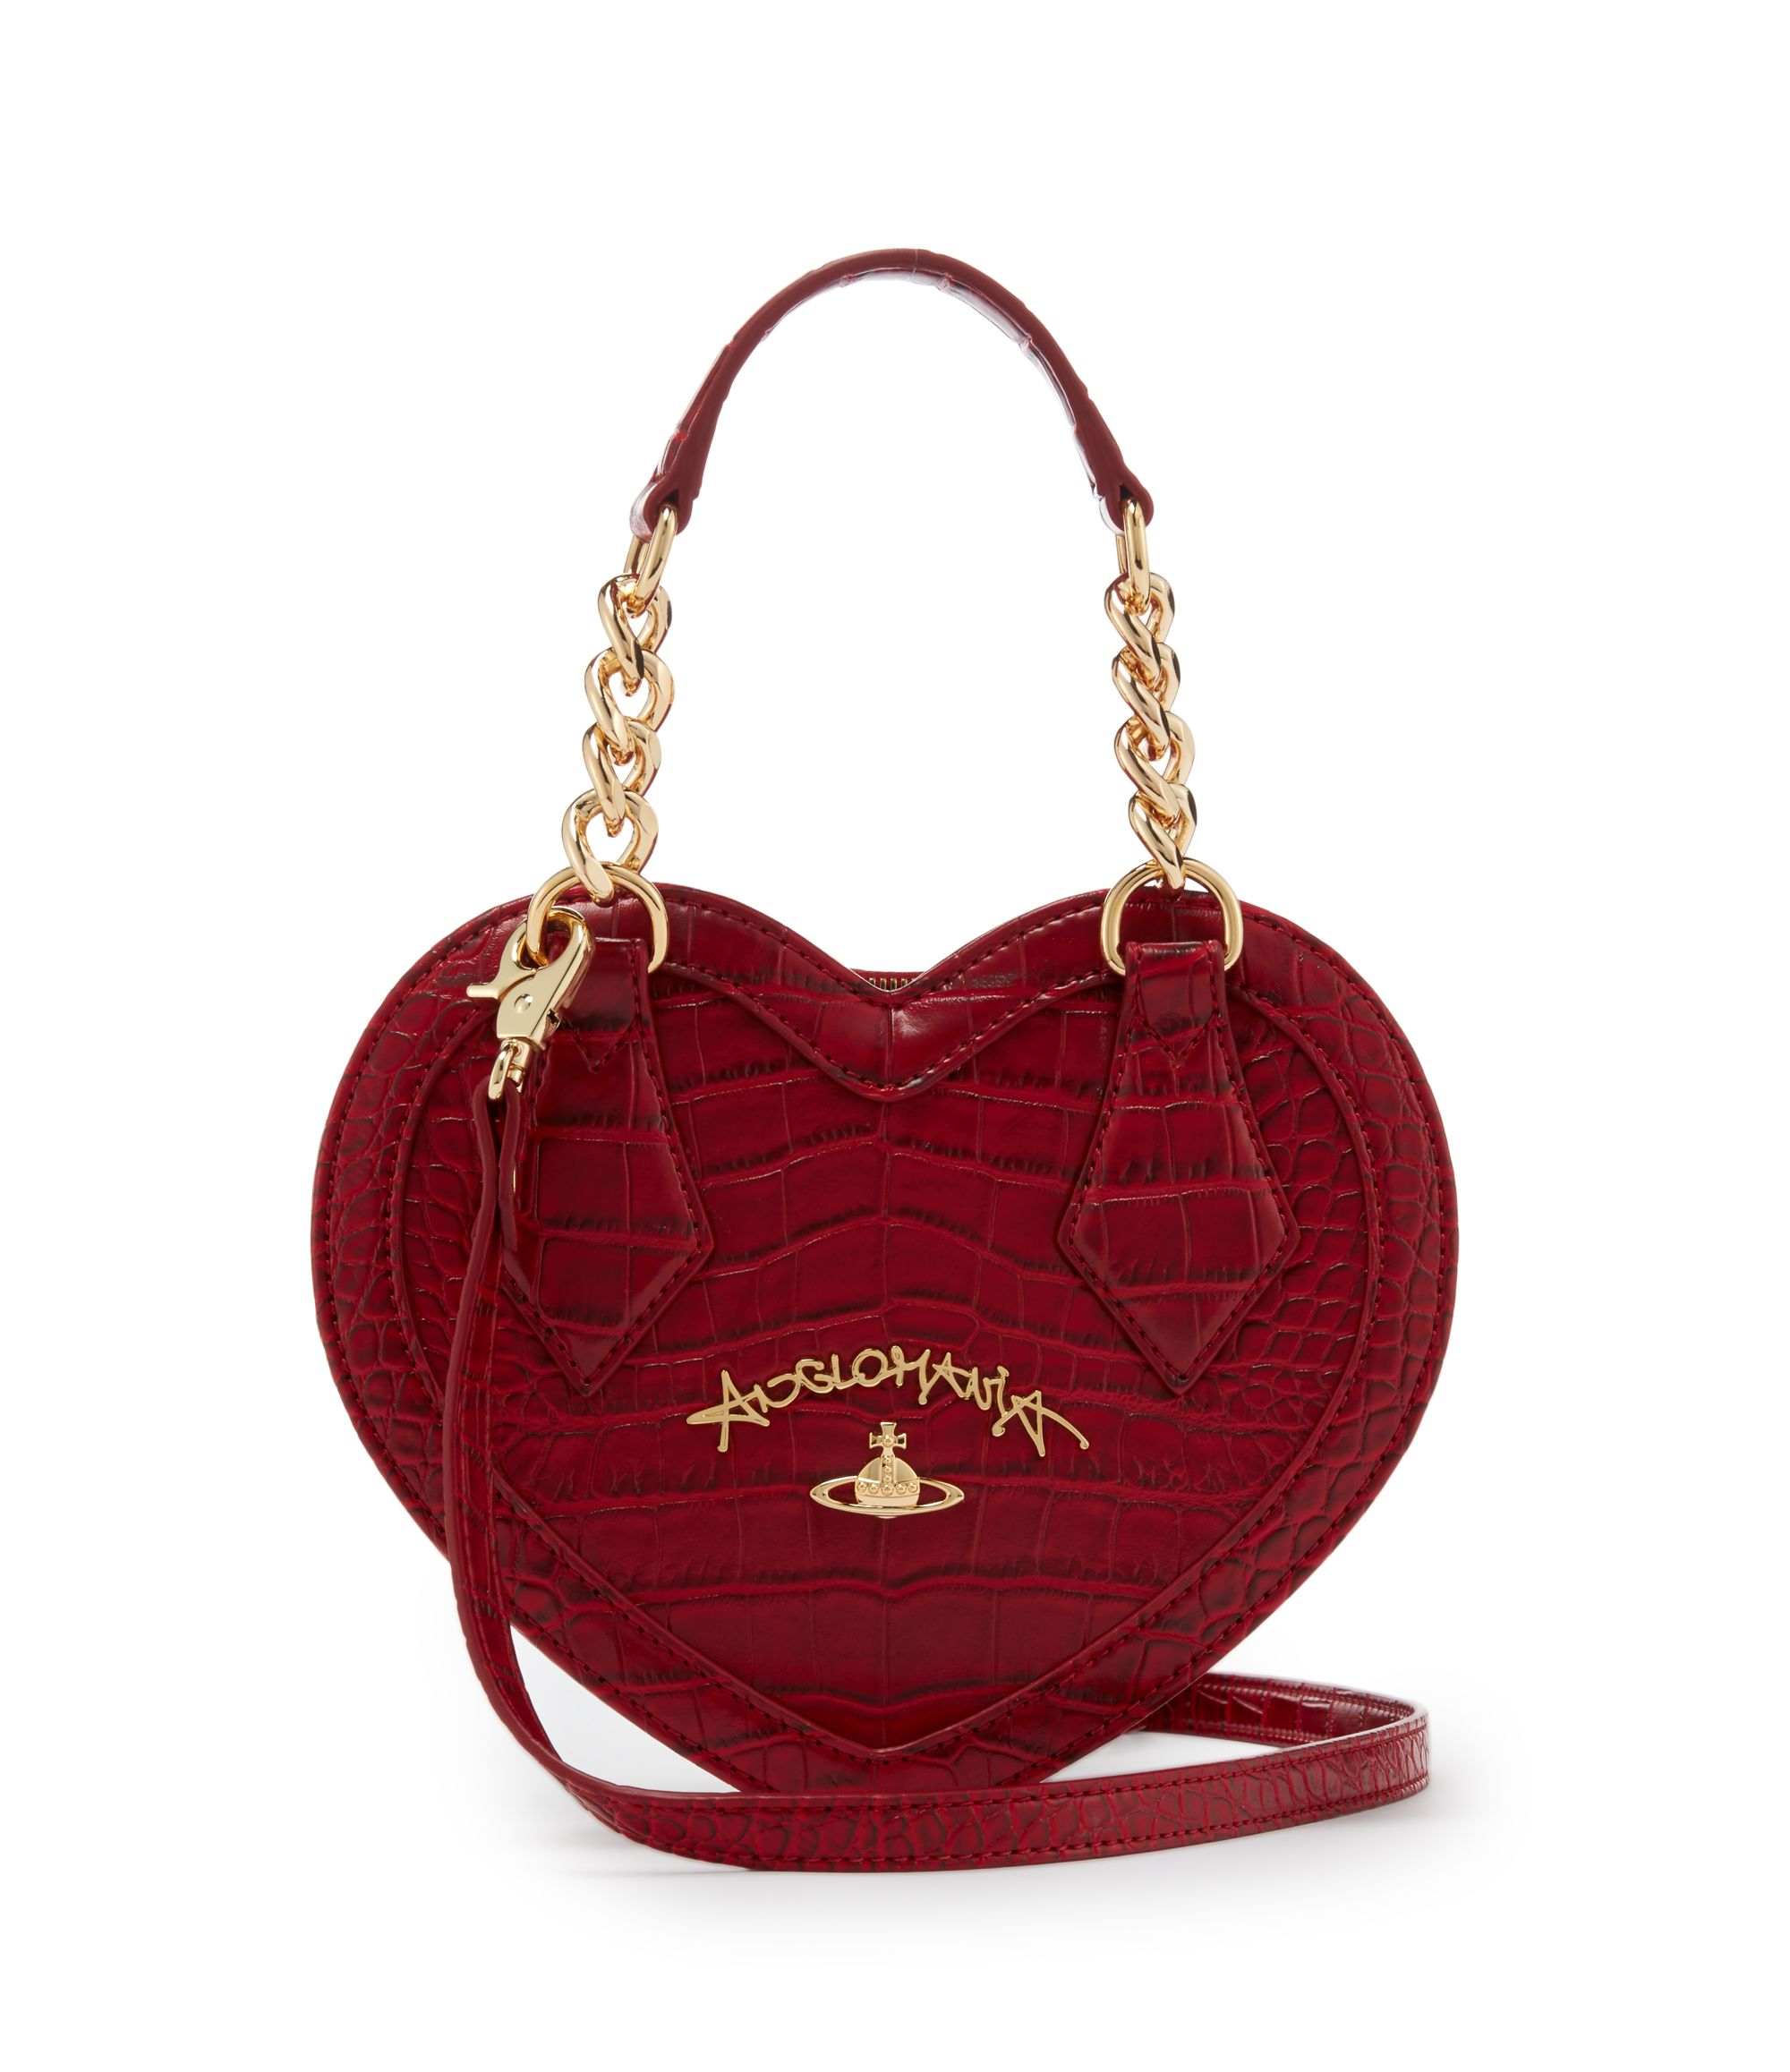 VIVIENNE WESTWOOD Red Dorset Bag 7272.  viviennewestwood  bags  leather   81fcd3a794ed5